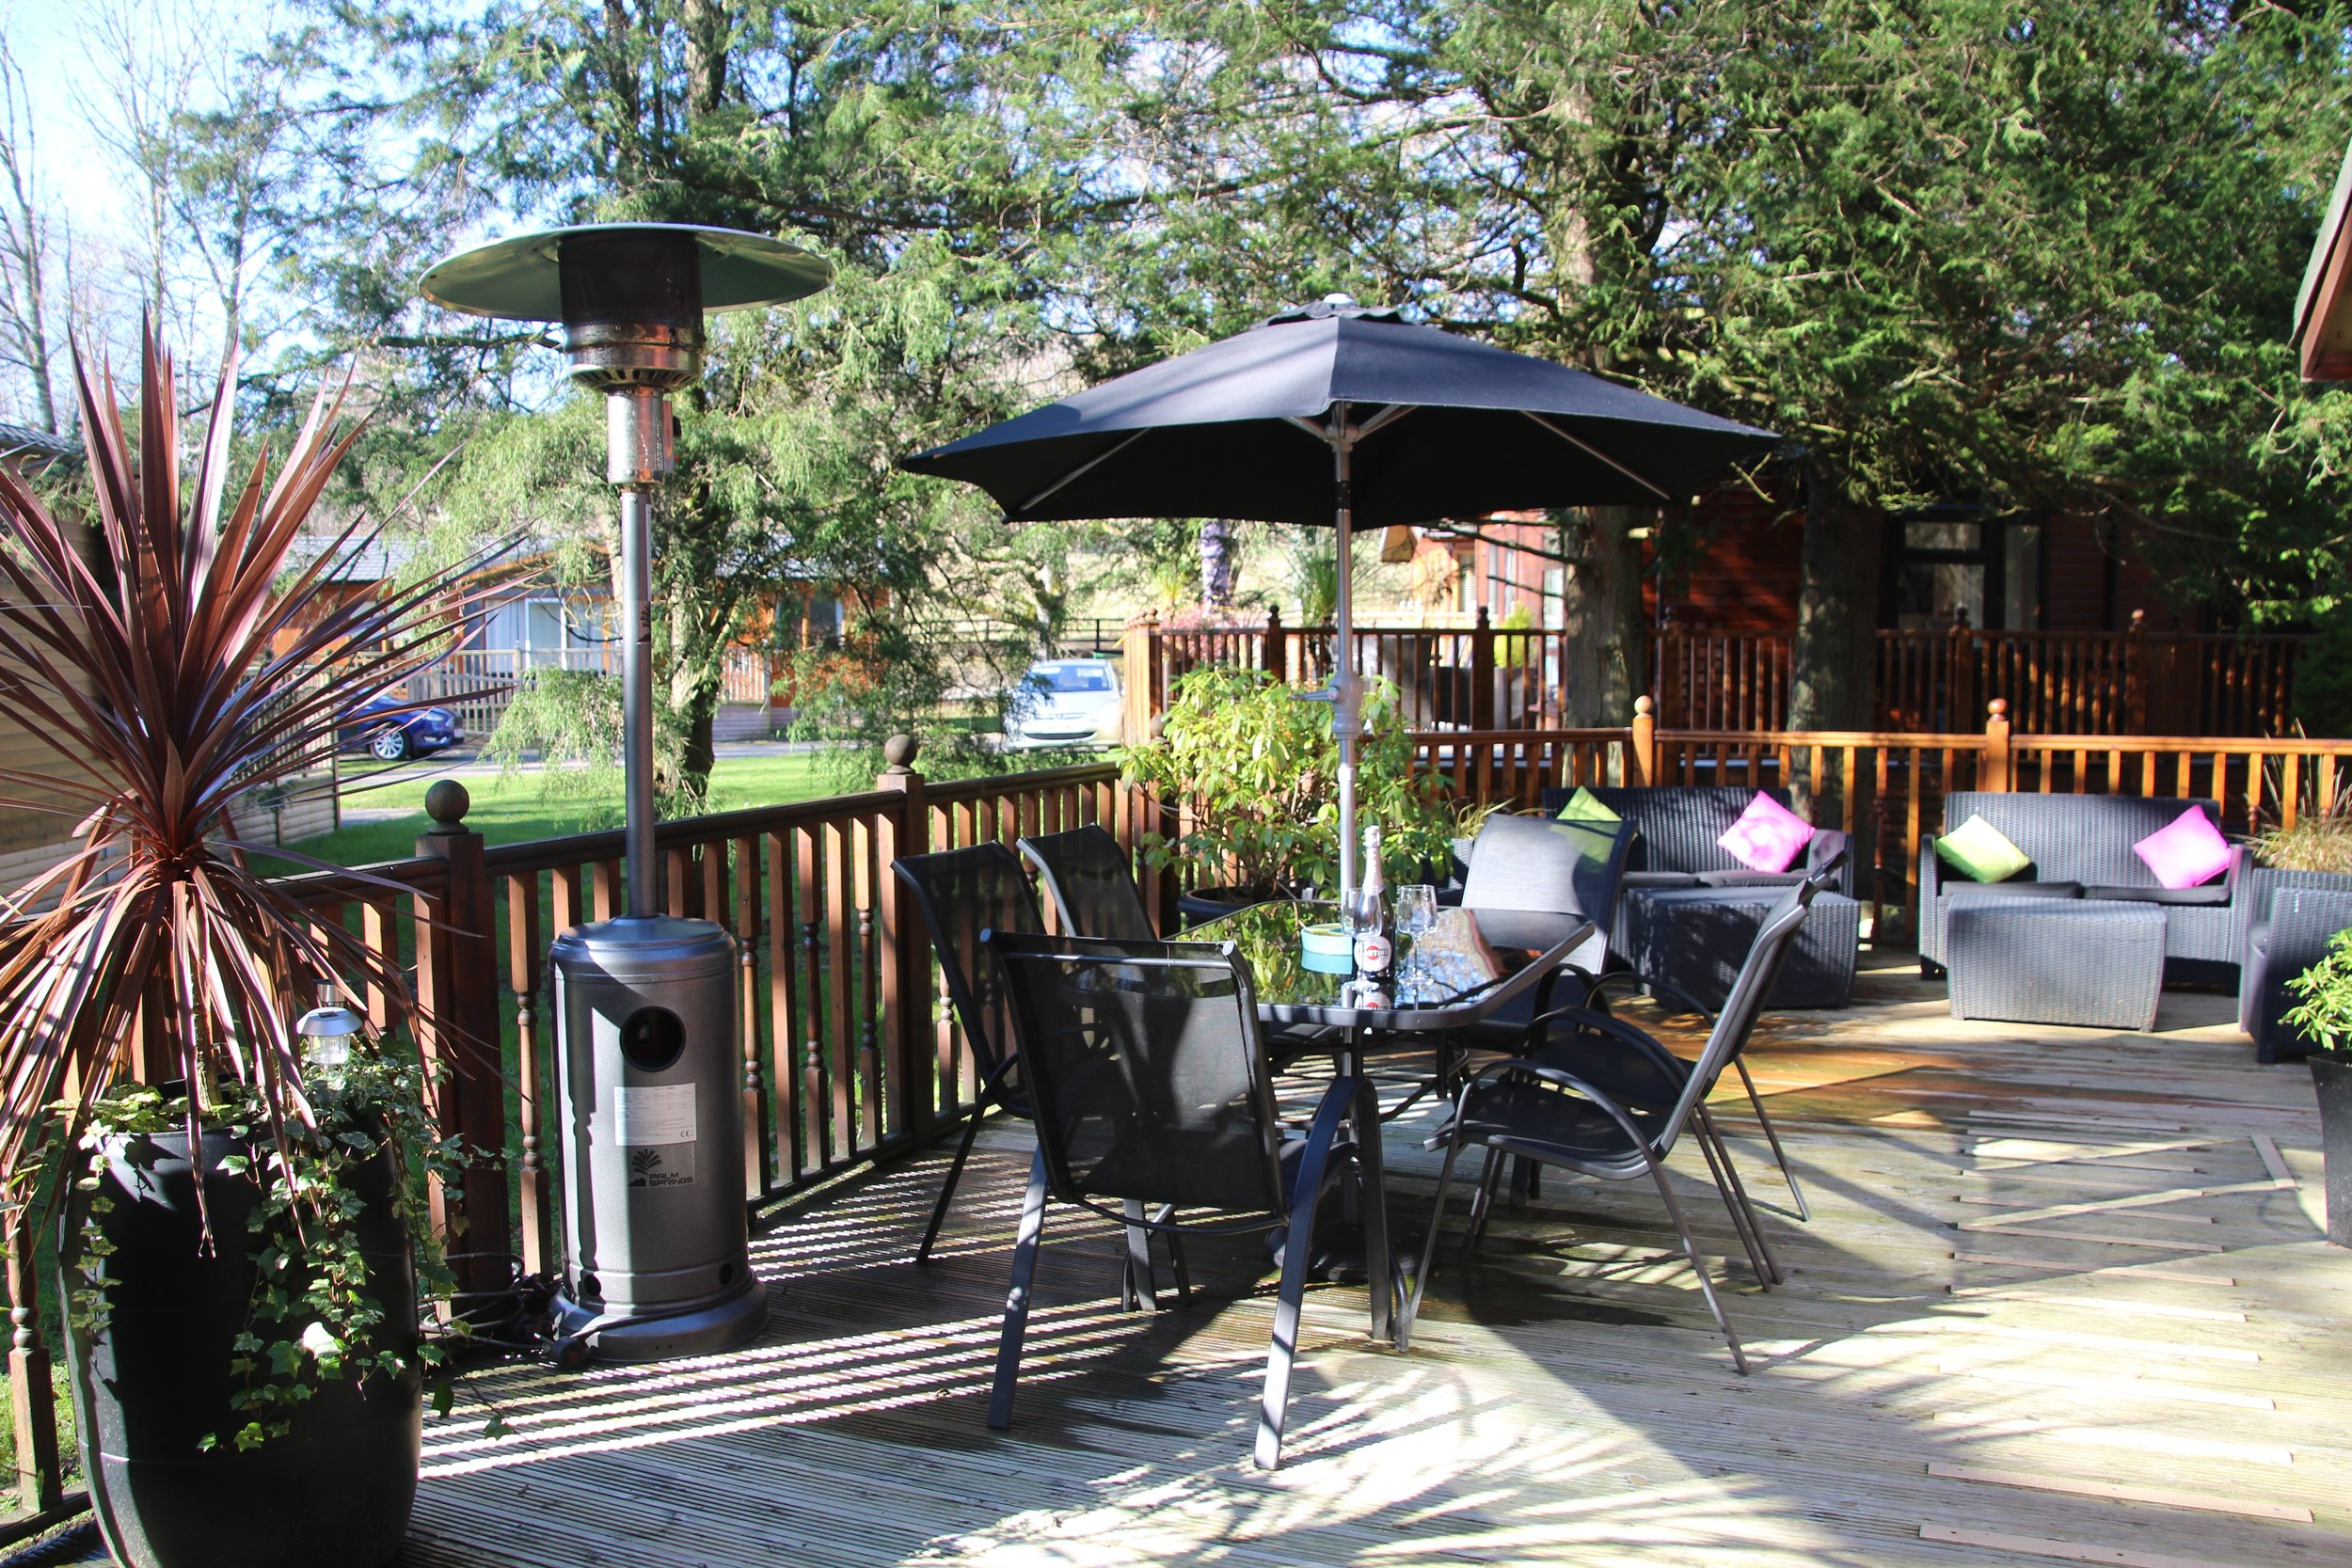 Large outdoor deck with dining furniture and sofas